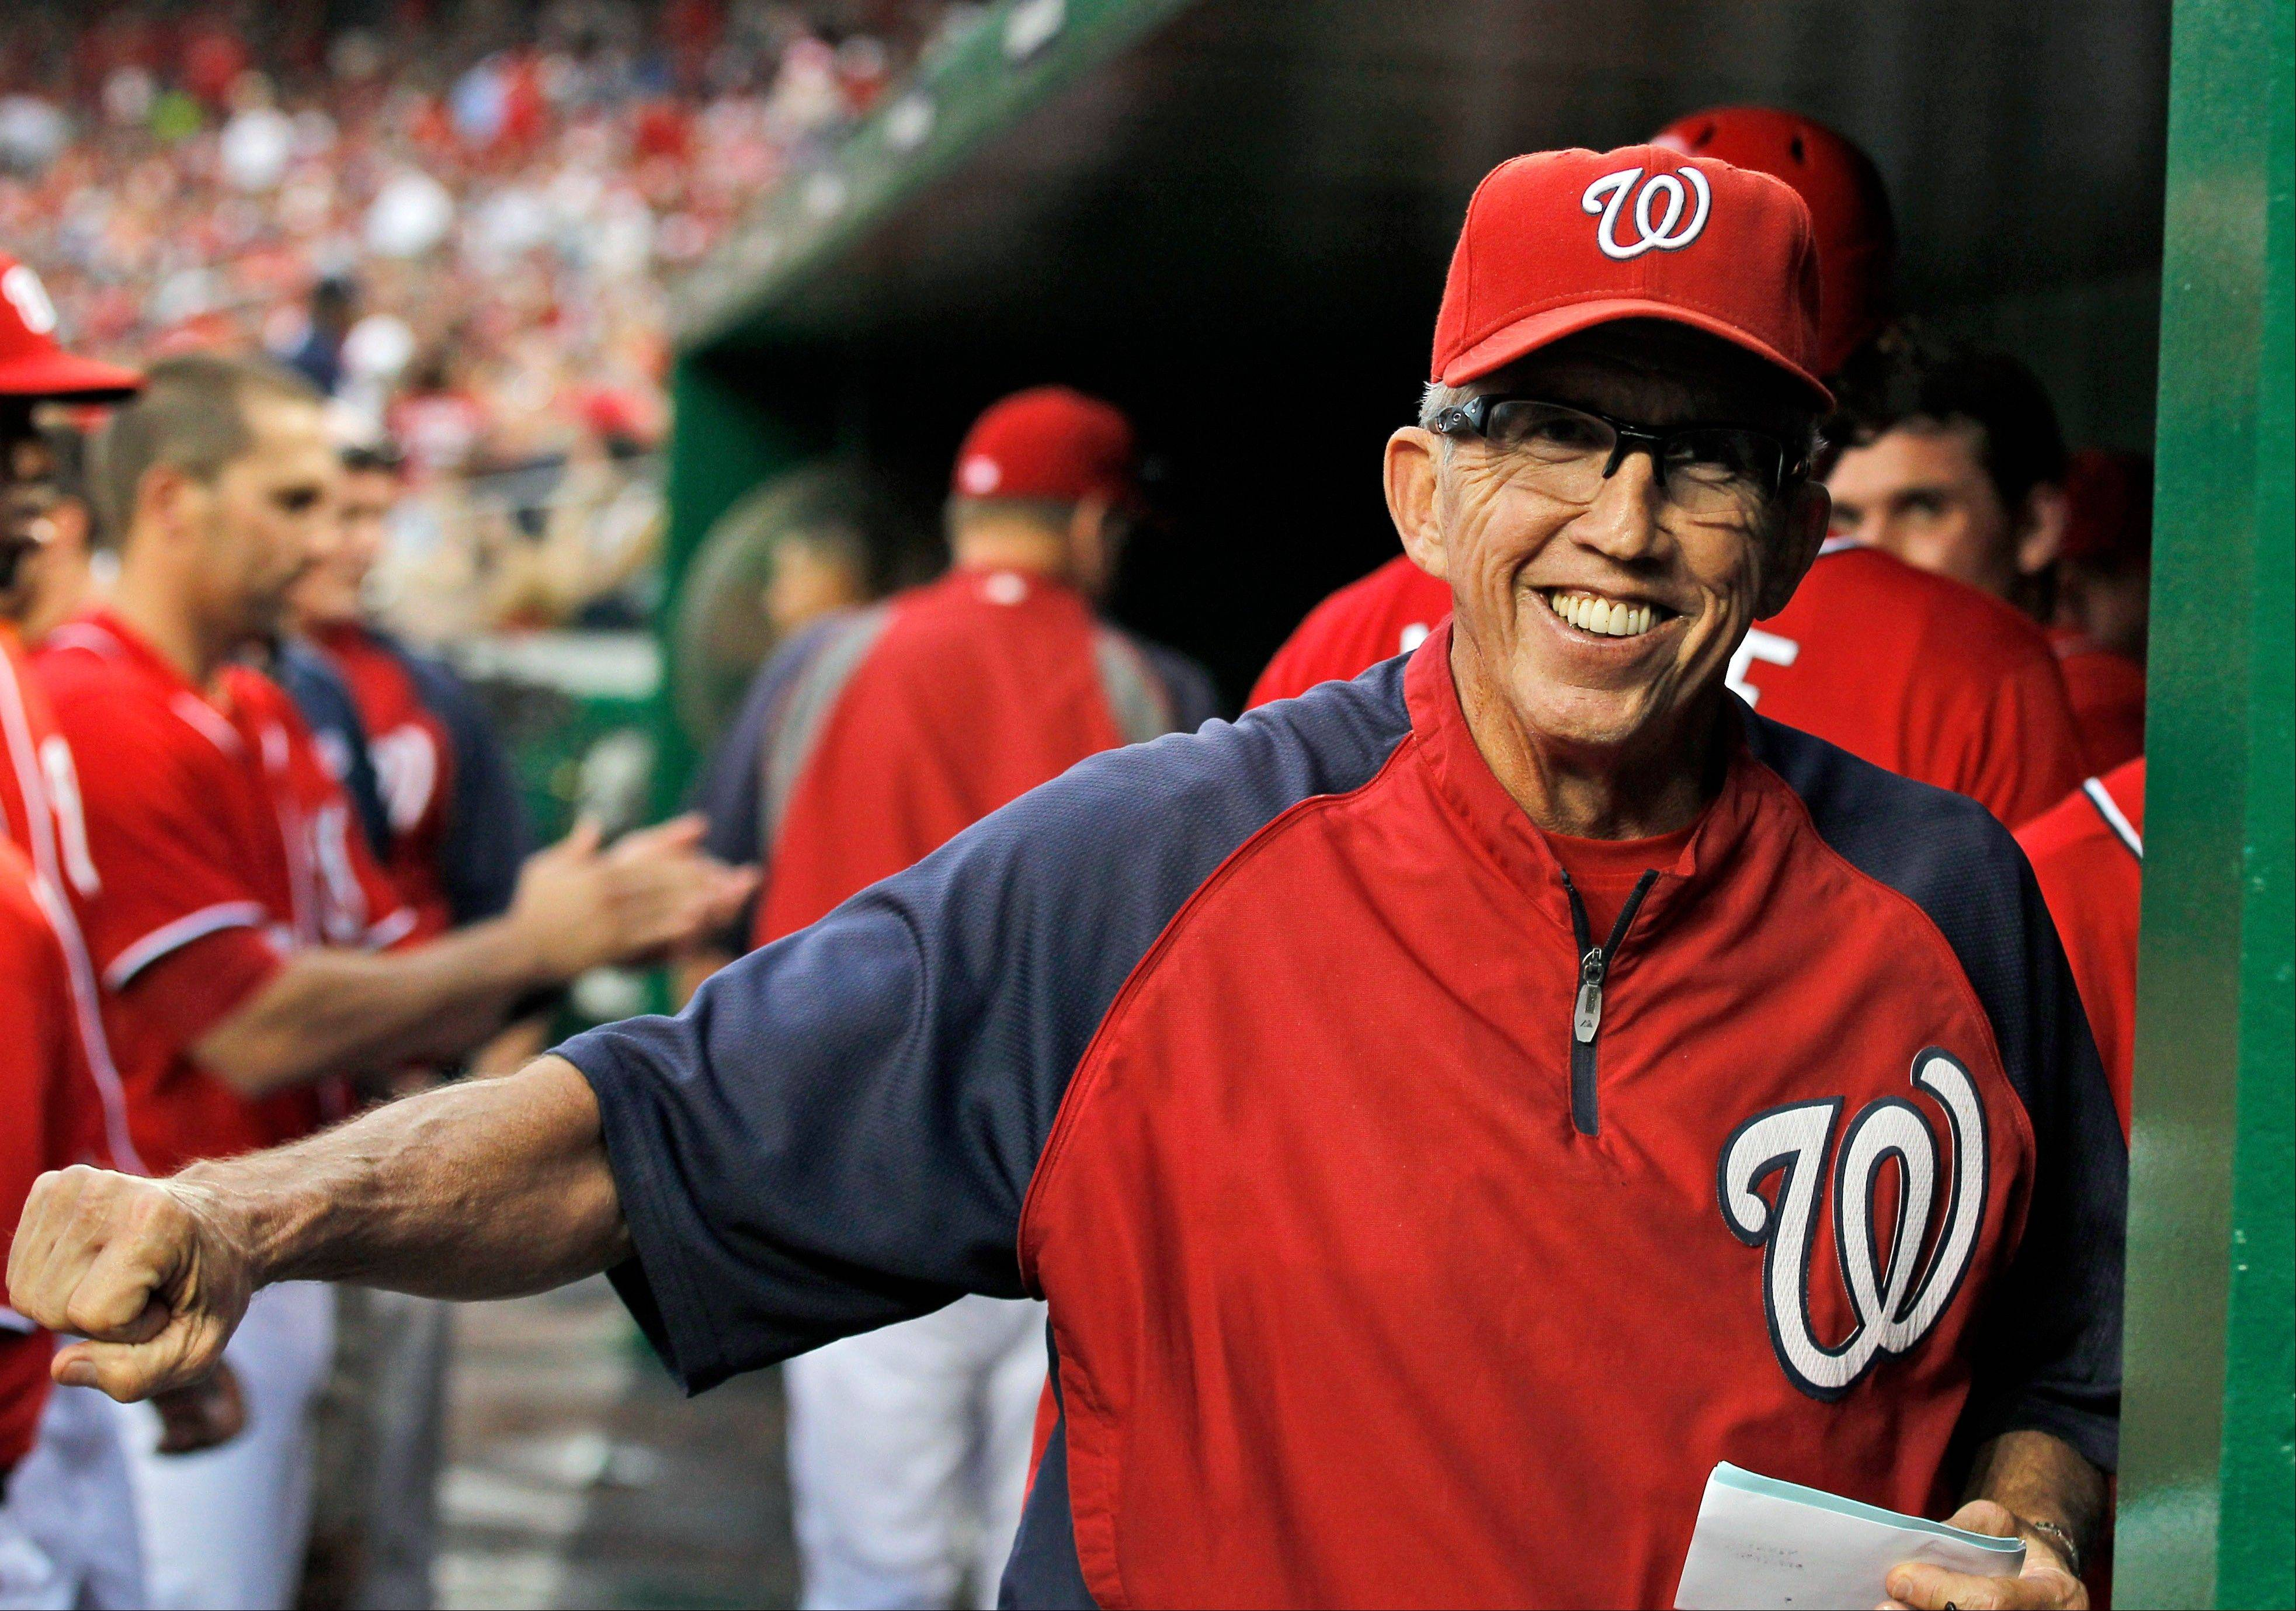 Washington Nationals manager Davey Johnson was voted as the National League Manager of the Year on Tuesday.